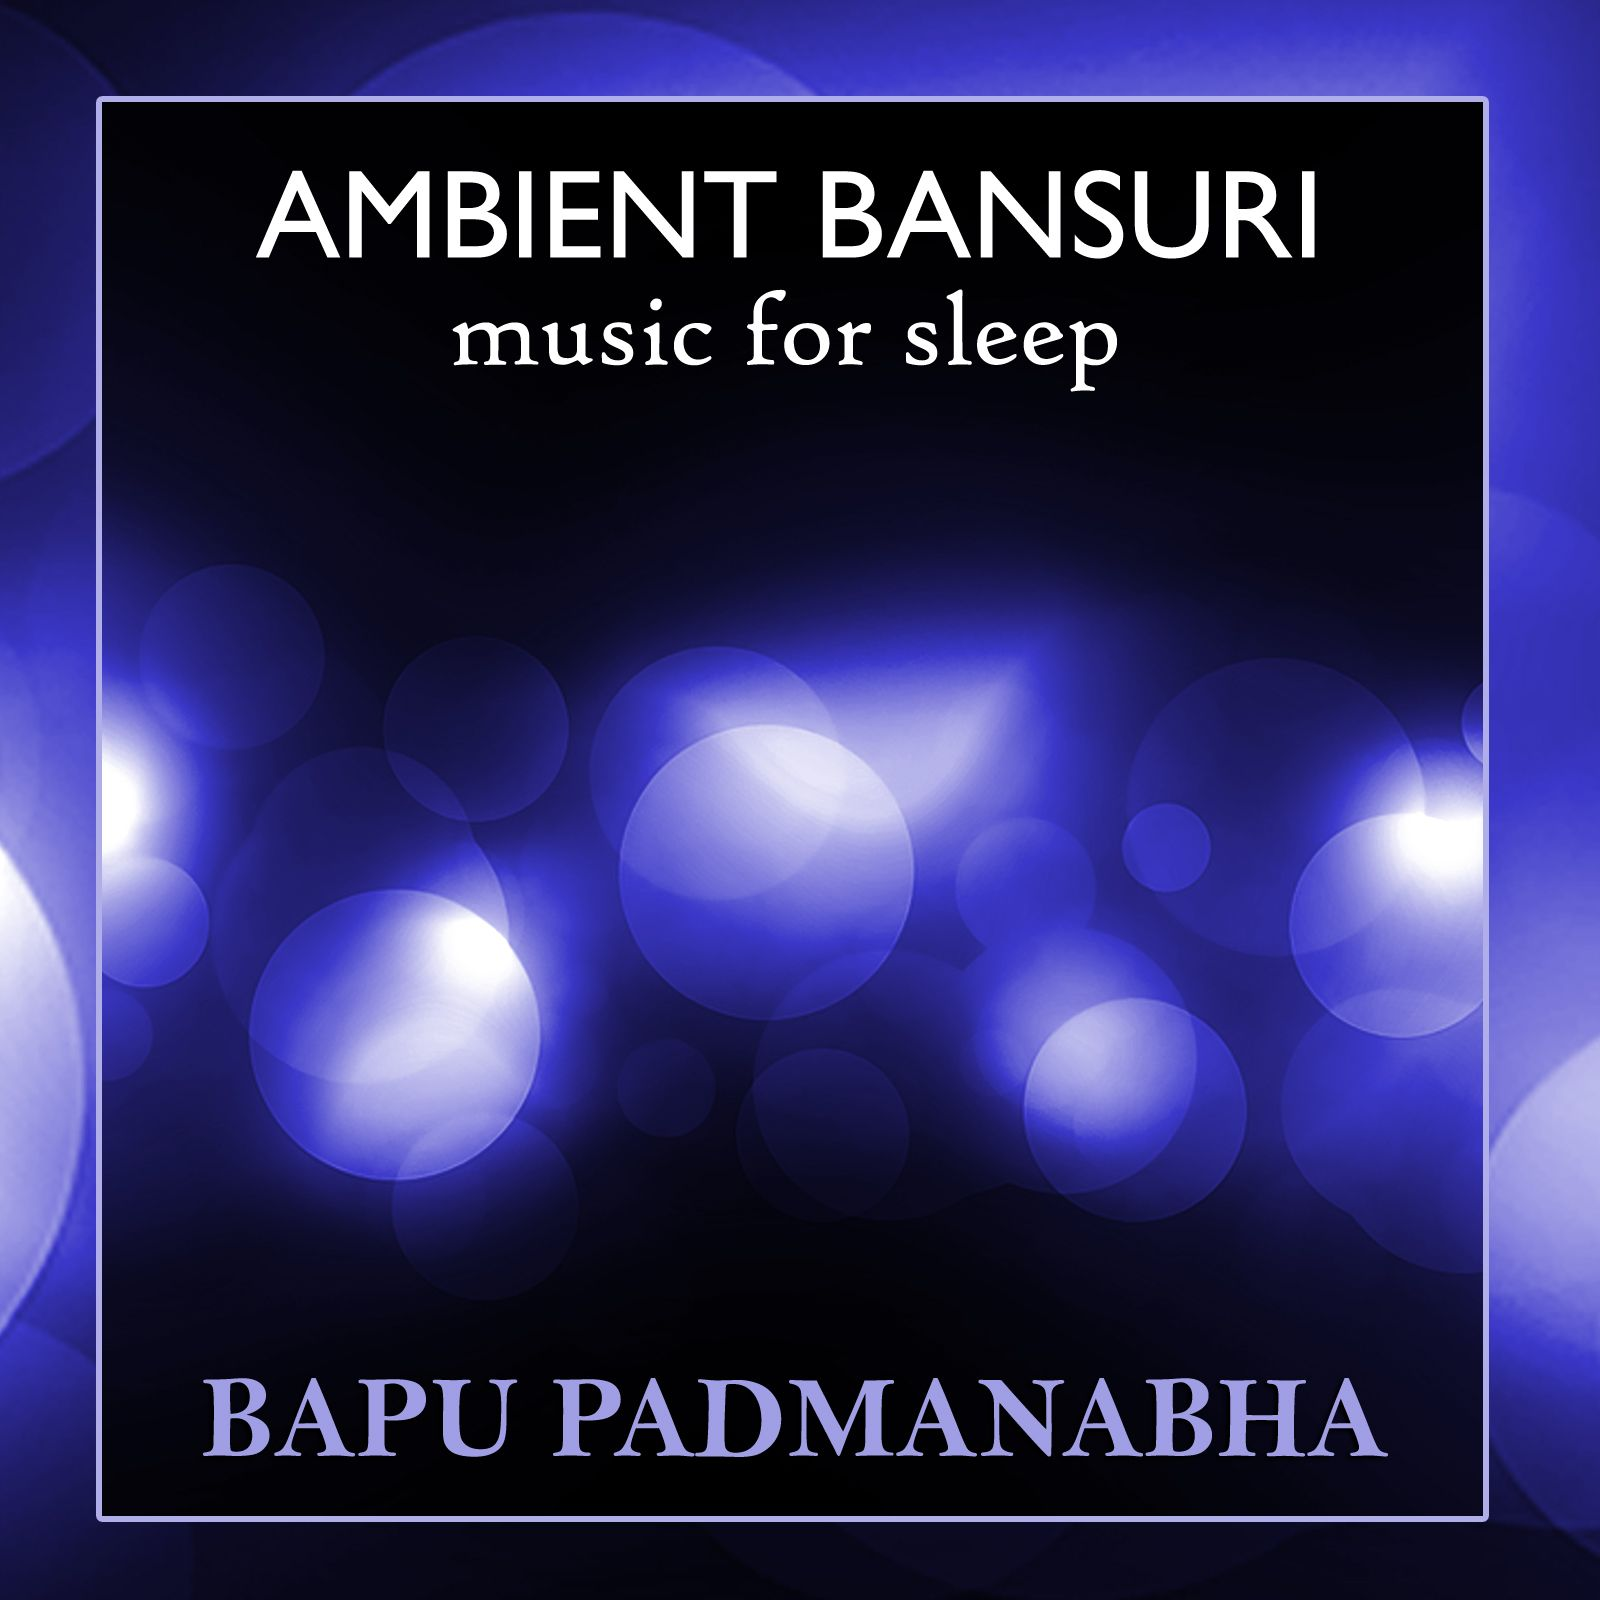 """'AMBIENT BANSURI ' Nice album for Good Sleep...Bapu Flute understands the aspects of sound effects on melody. In short, he is a great musician. """"Bapu is an Excellent flutist with a in depth spiritual knowledge and Music. A very rare talent to bring up the spirituality in the form of music and mesmerize the audience."""